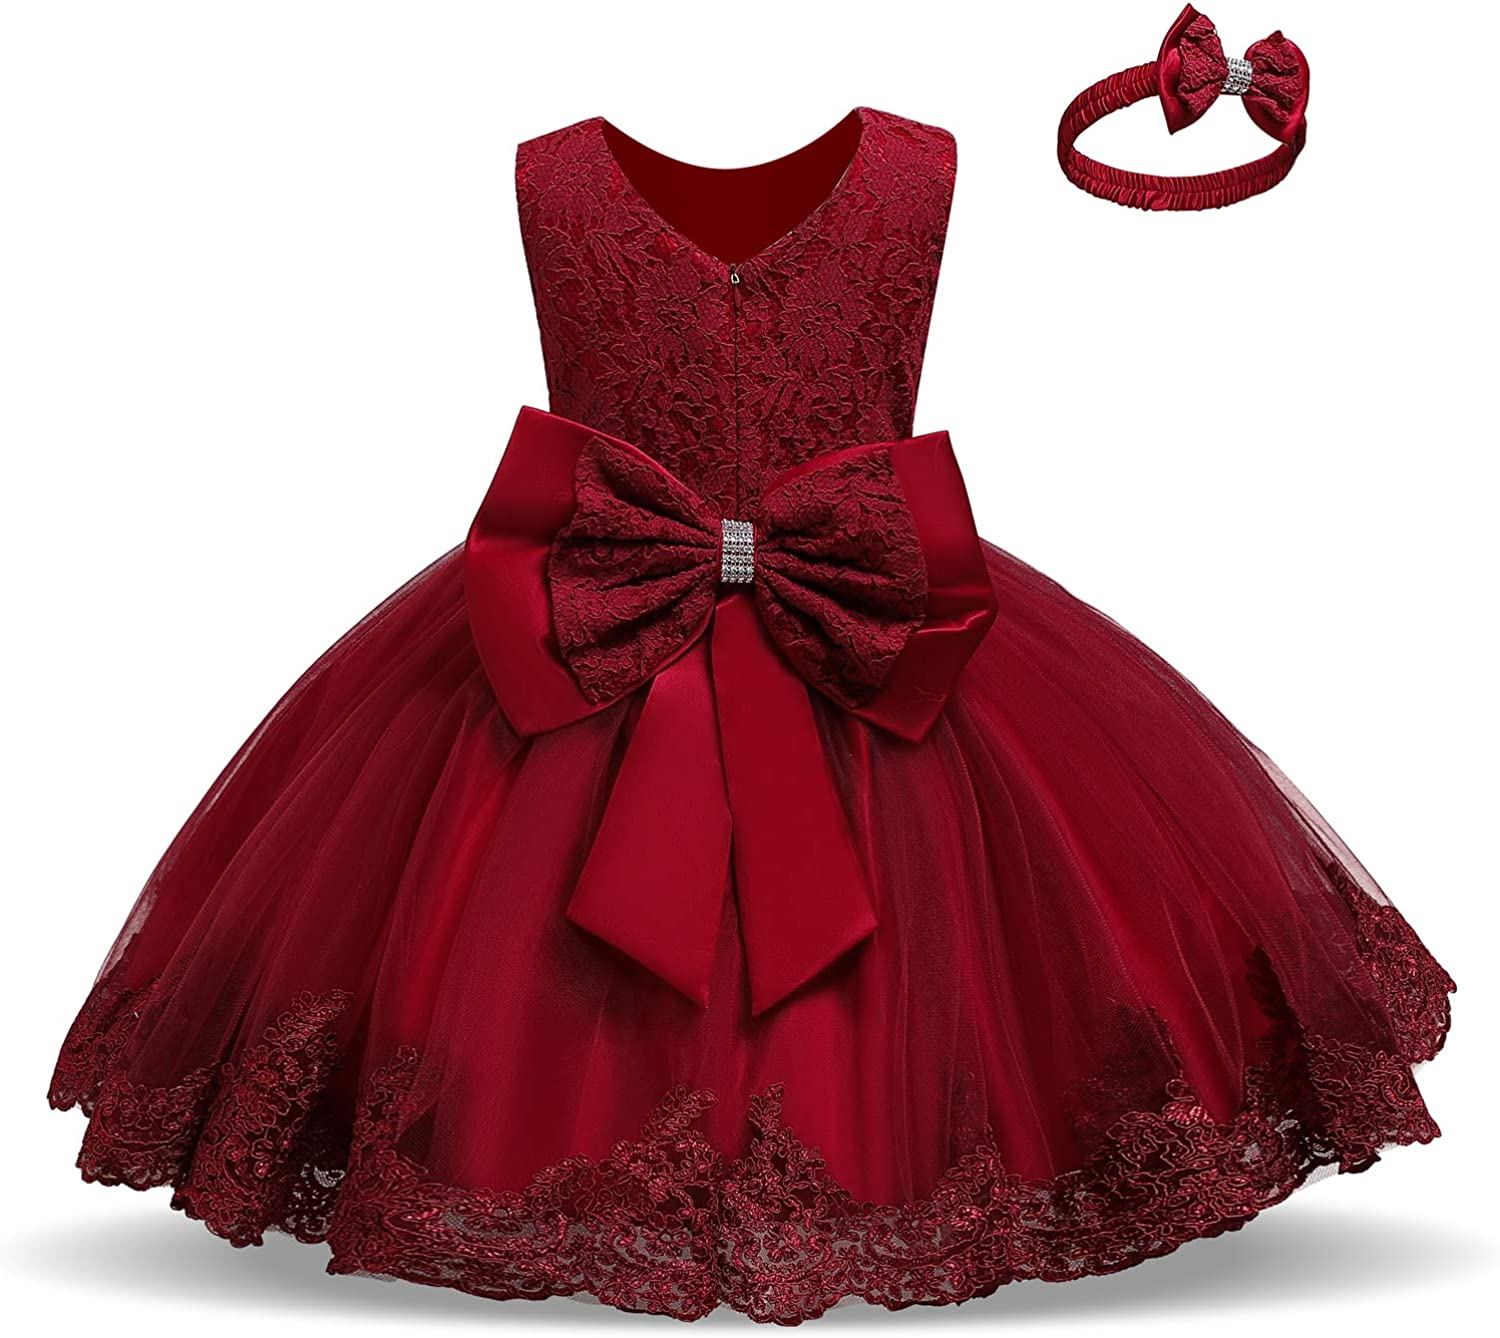 NNJXD Girls' Tulle Flower Princess Wedding Dress for Toddler and Baby Girl: Clothing